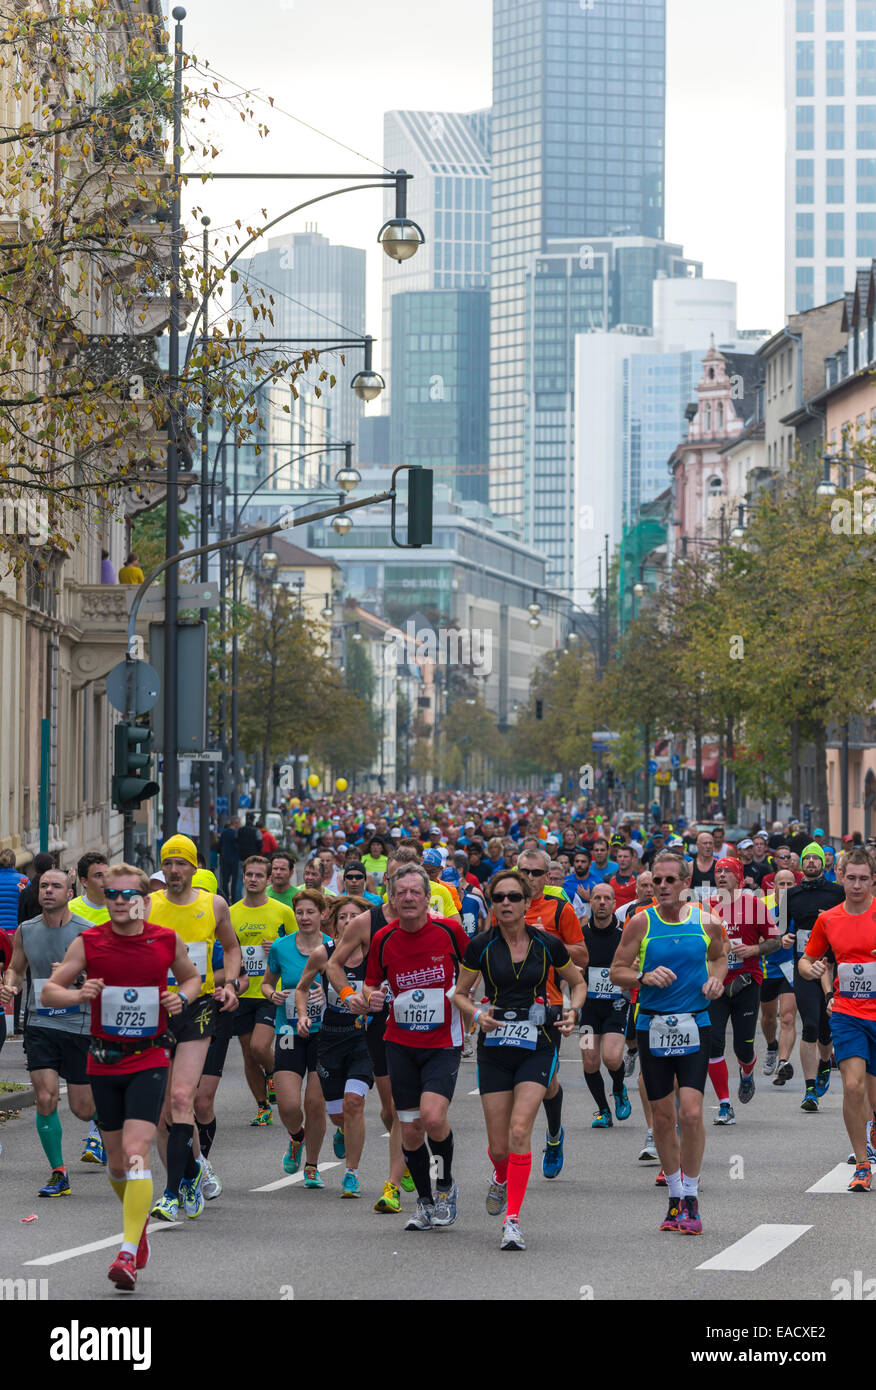 33rd BMW Frankfurt Marathon, field of runners with skyscrapers at the back, Westend, Frankfurt am Main, Hesse, Germany - Stock Image